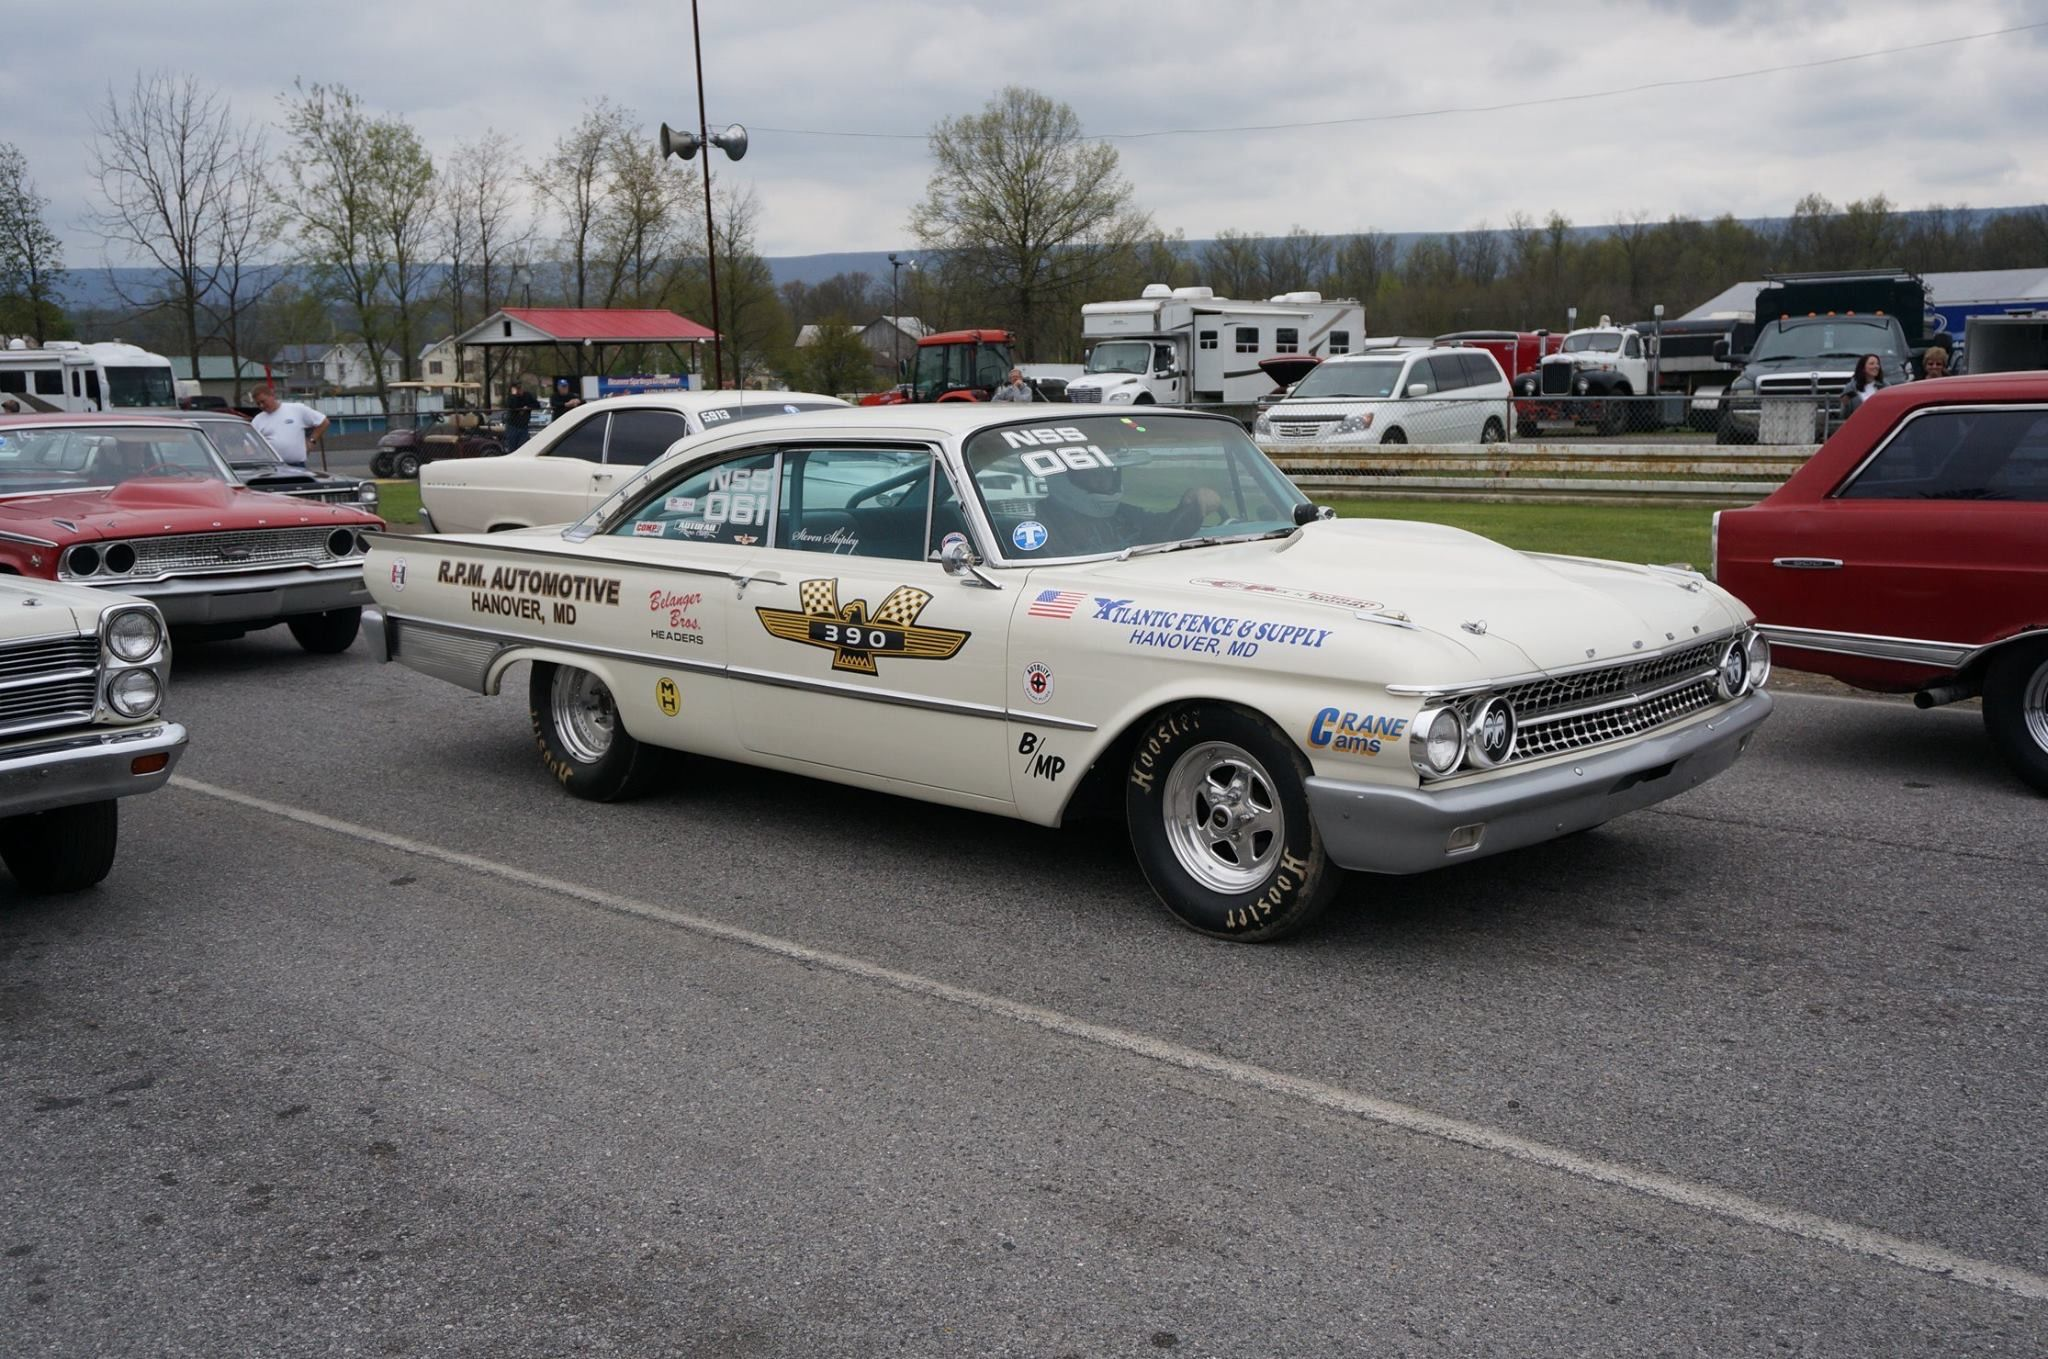 1961 ford starliner drag car as seen on the starliner facebook page